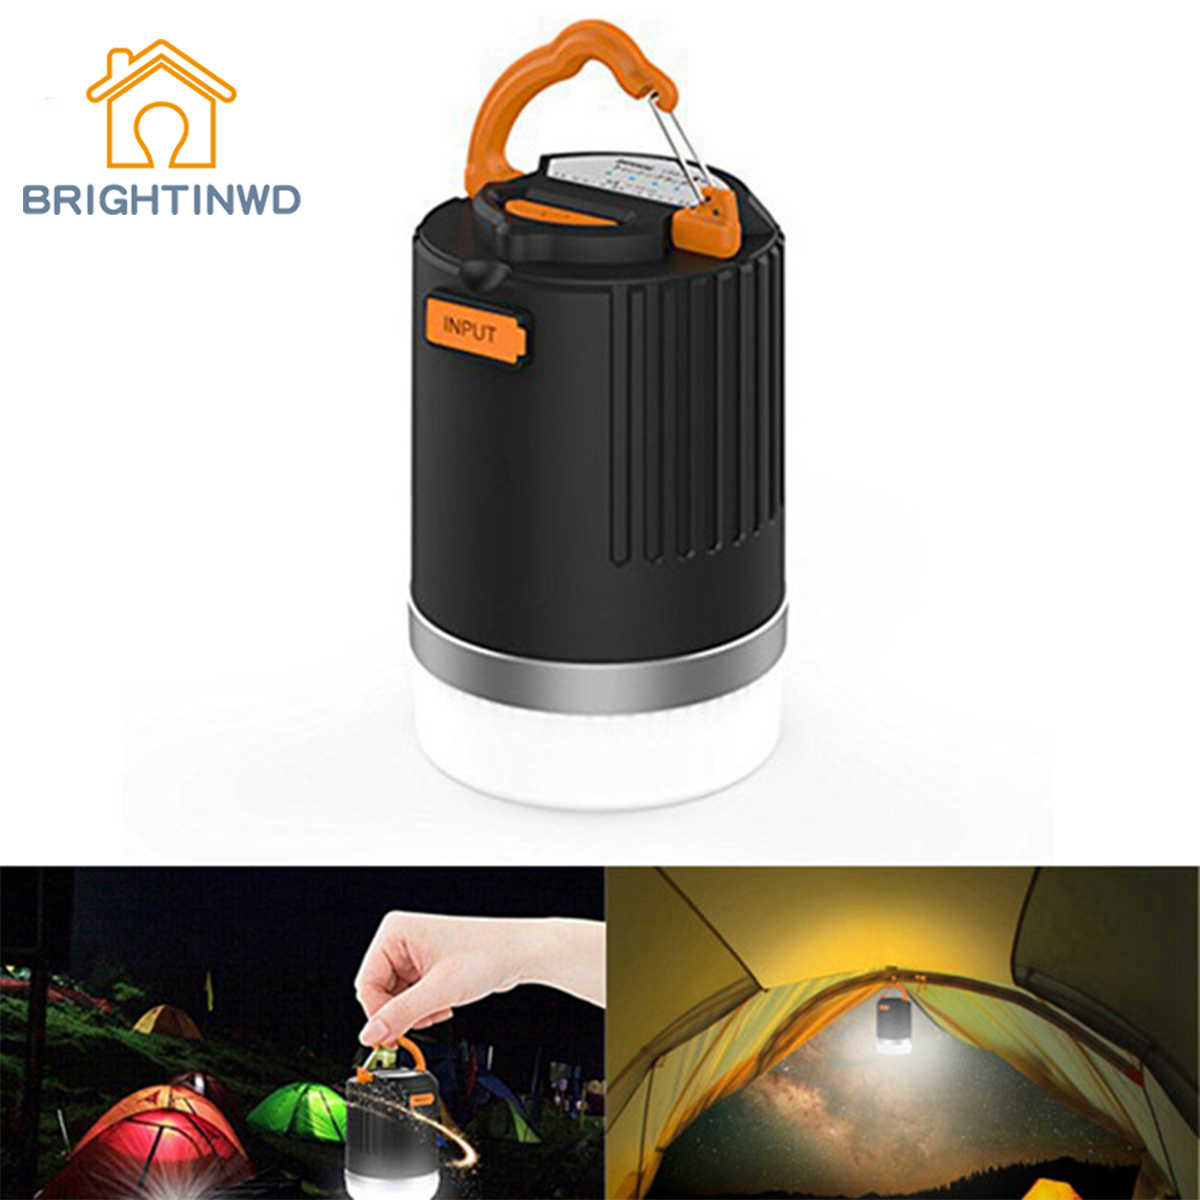 BRIGHTINWD Portable Outdoor Camping Lantern USB Rechargeable LED Light With 10400mAh Power Bank For Phone Charging Tent Lanterns